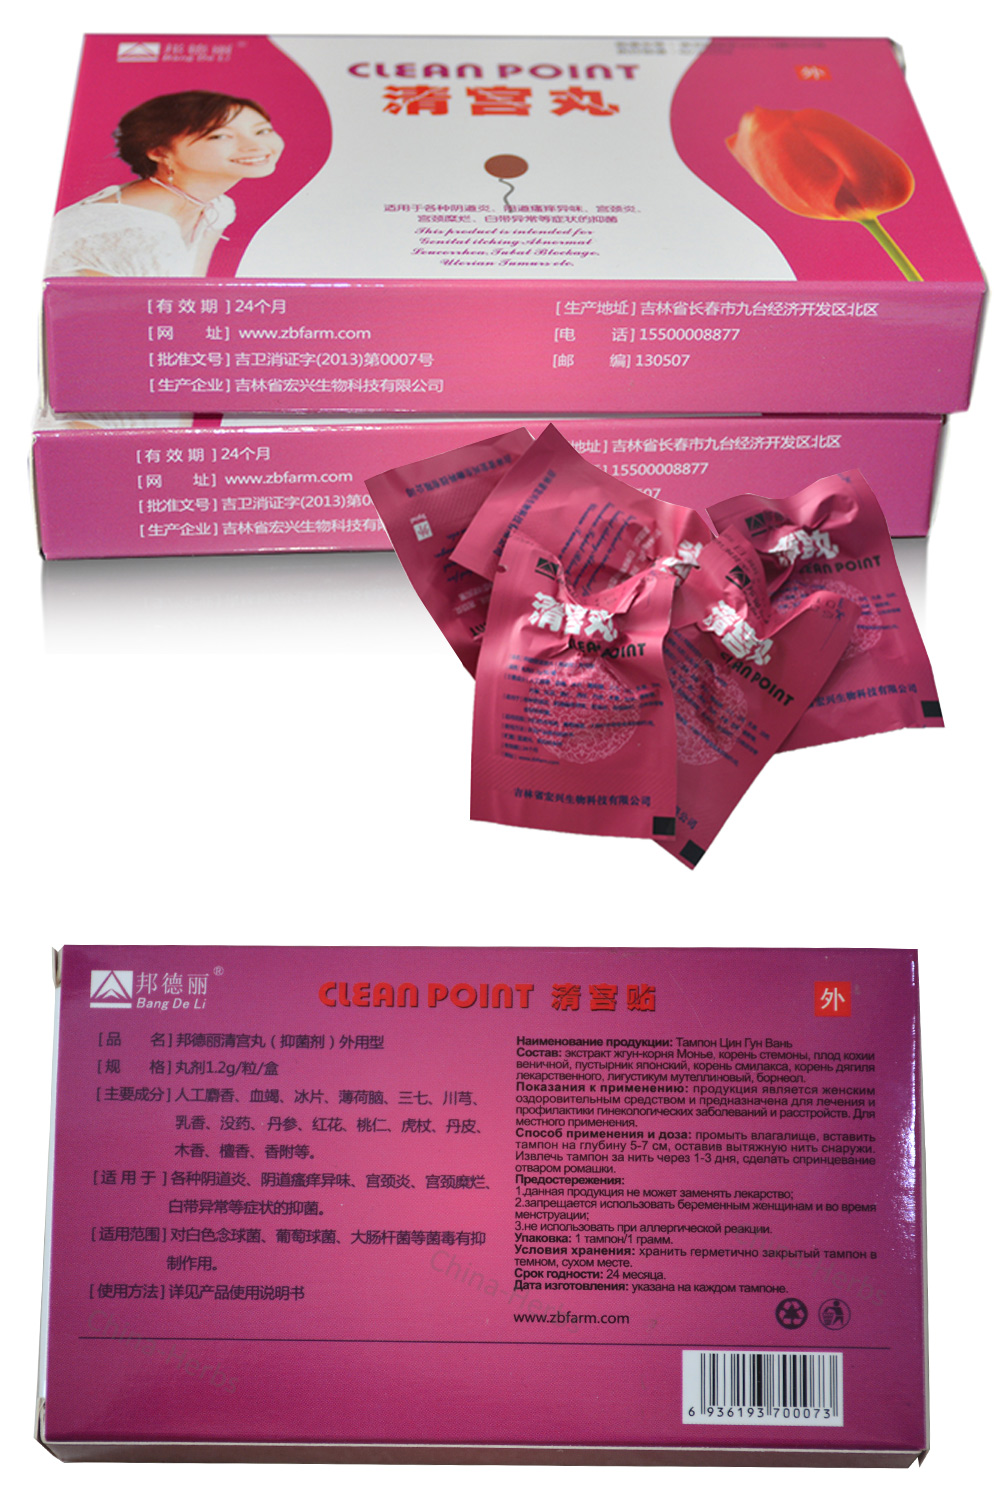 Hot Vaginal Cleaning detox pearls Herbal Tampon Clean Point tampons for Woman